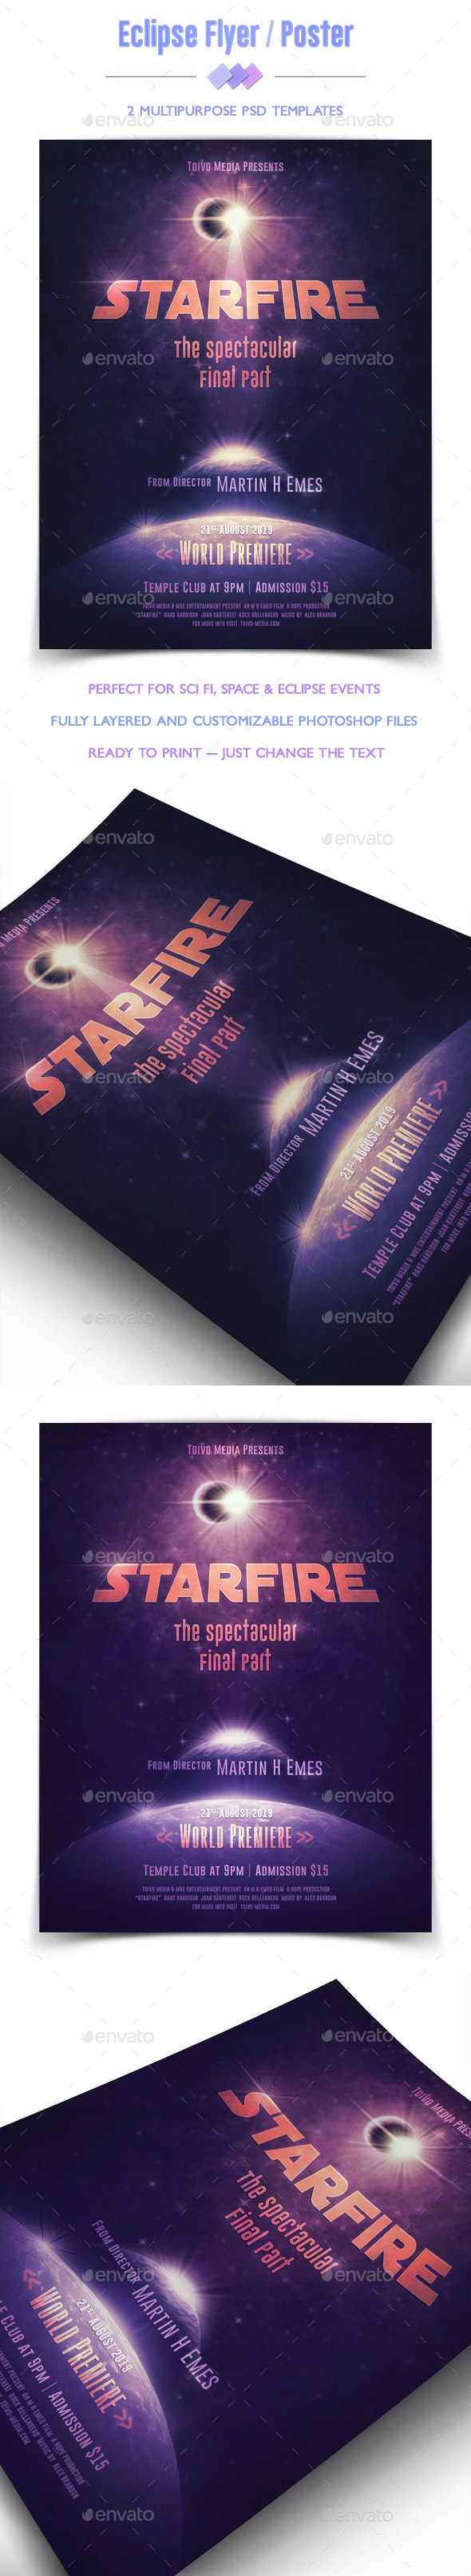 Eclipse Flyer / Poster - Clubs & Parties Events